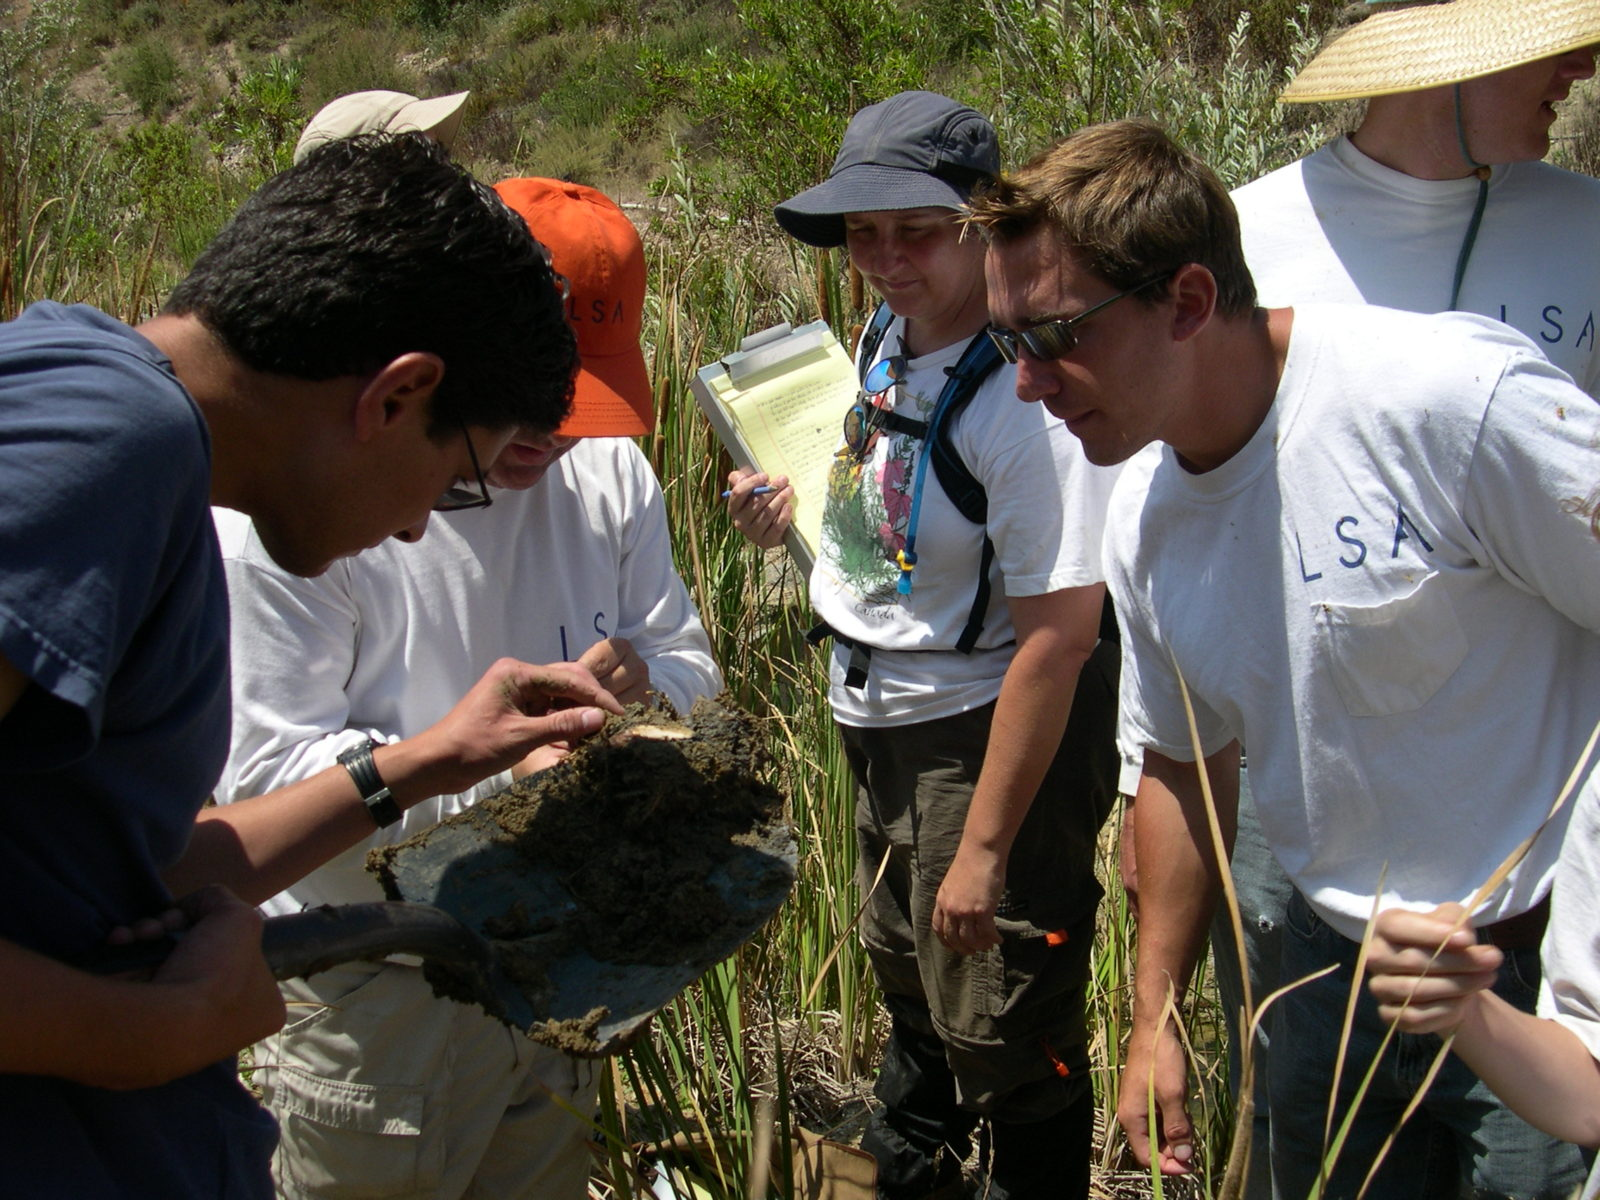 LSA Biologists At Work